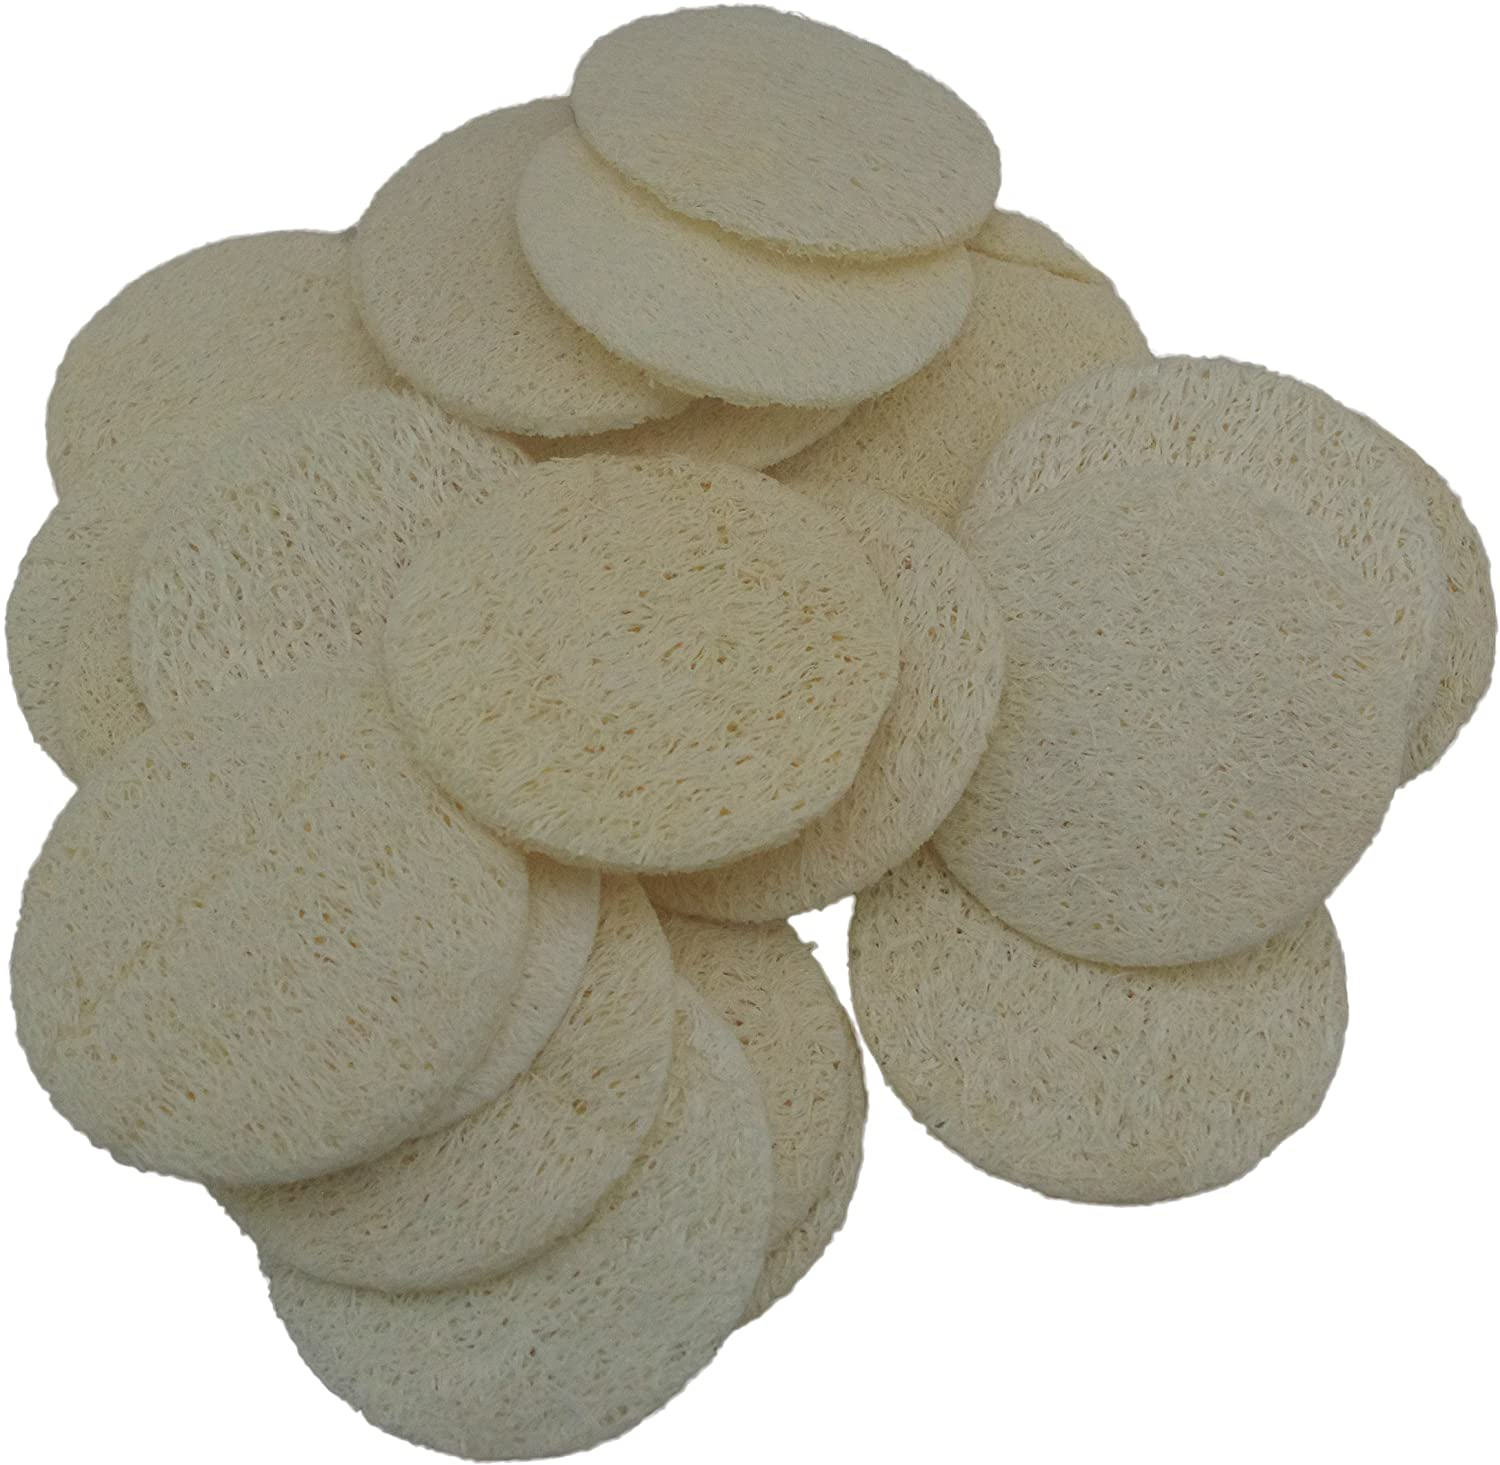 18 pcs/set Natural Exfoliating Face Pad Loofah Sponge Facial Brush - Shower Scrubber - Body Bath Spa For Men & Women - Renewable Resource - Pack of 18 Mr.Cui'shop